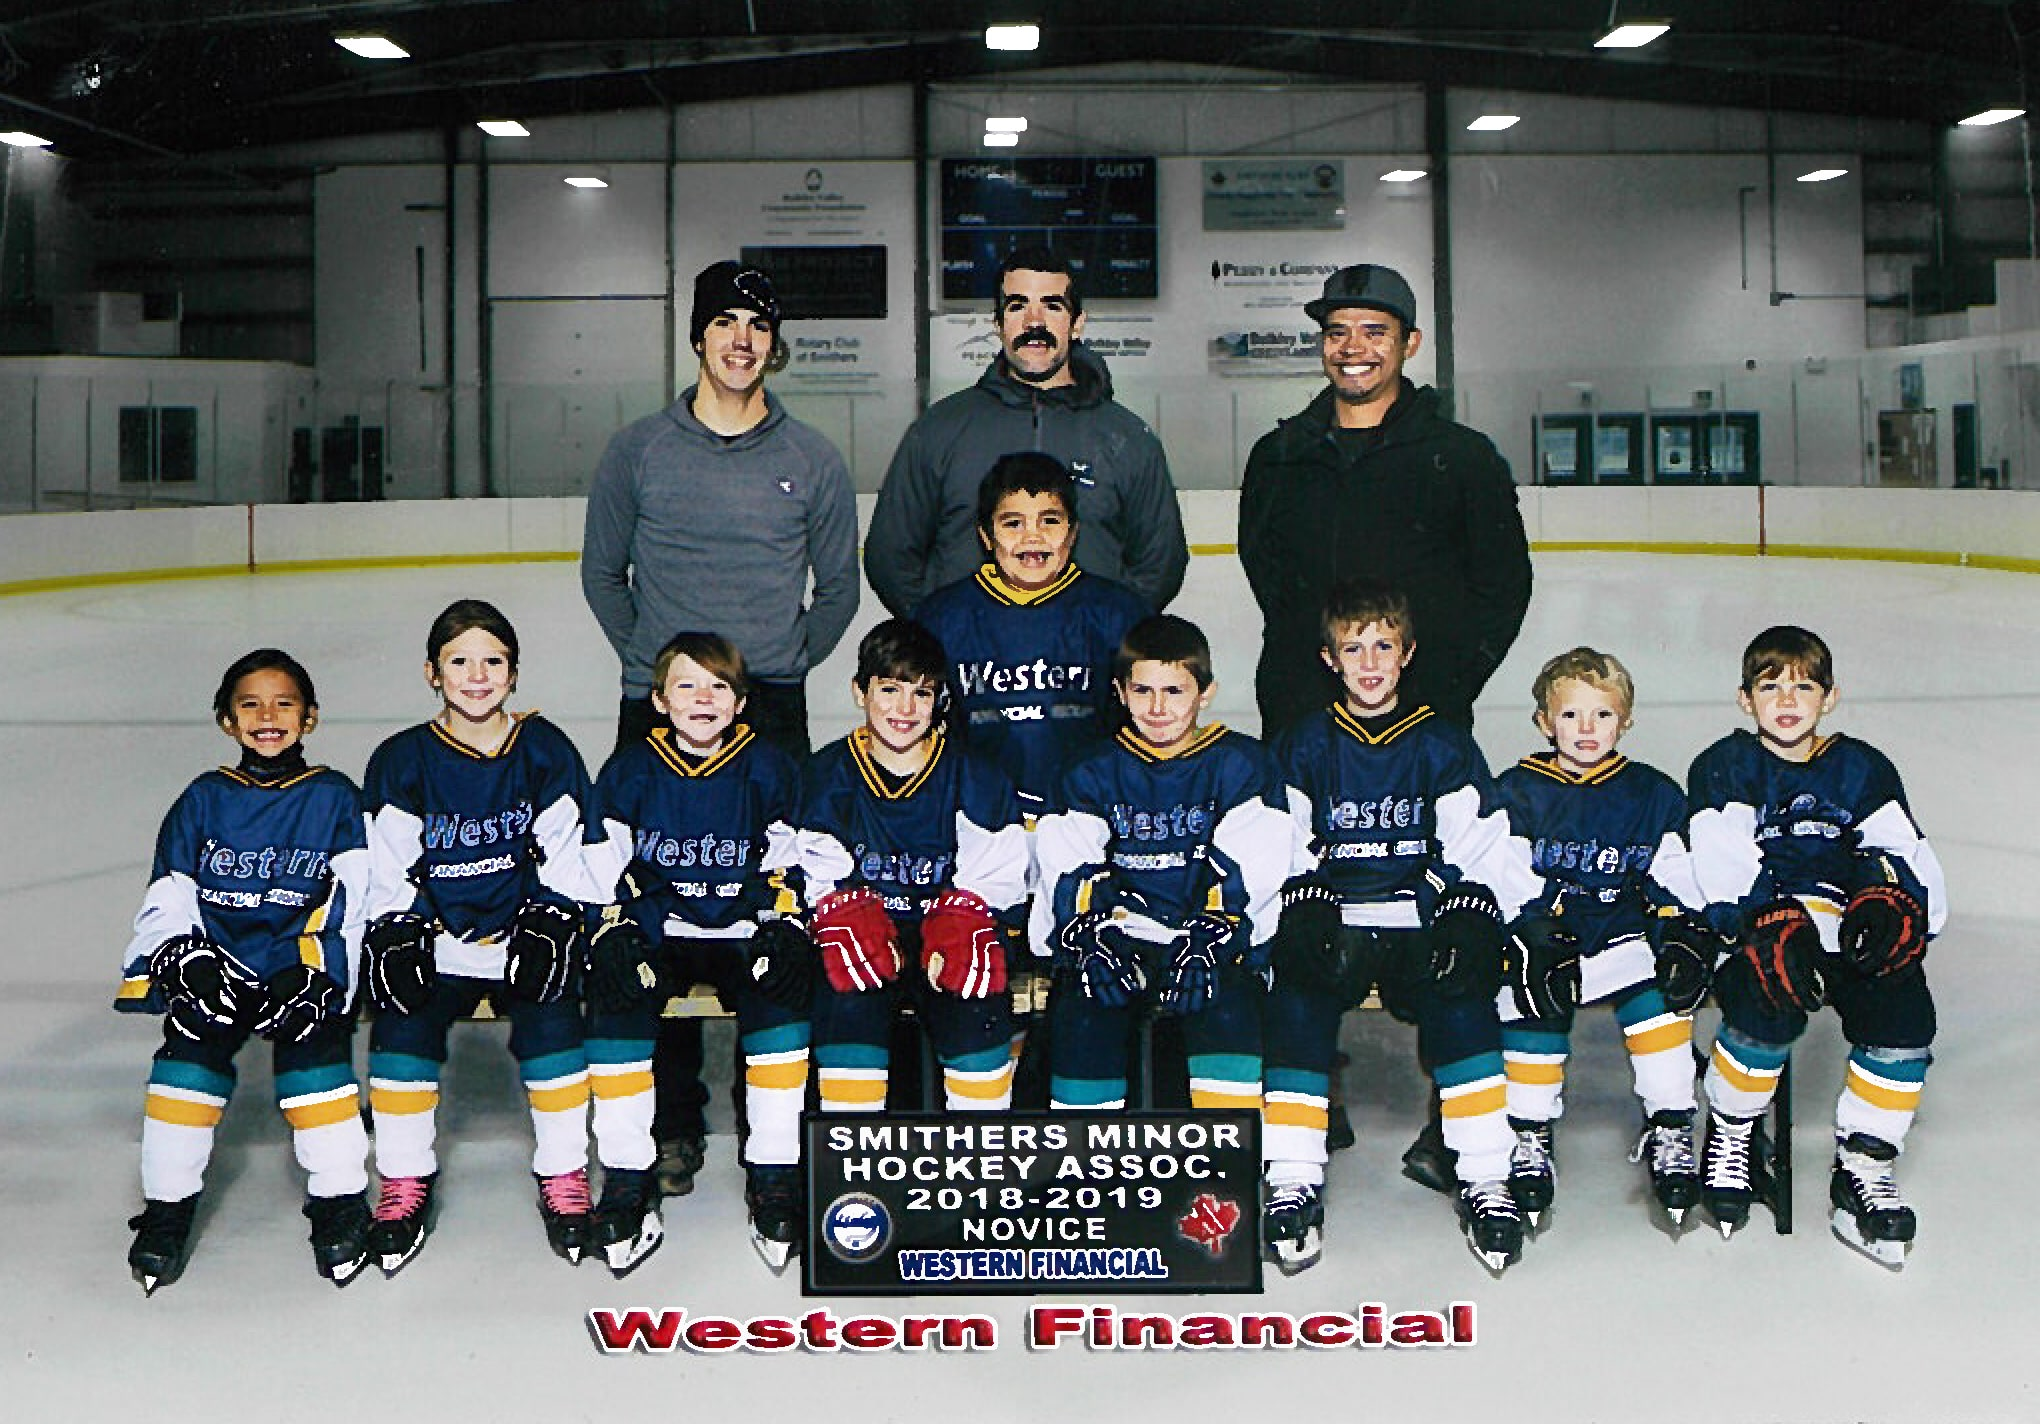 The 2018/19 Smithers Minor Hockey Association novice team poses with coaching staff in the community rink